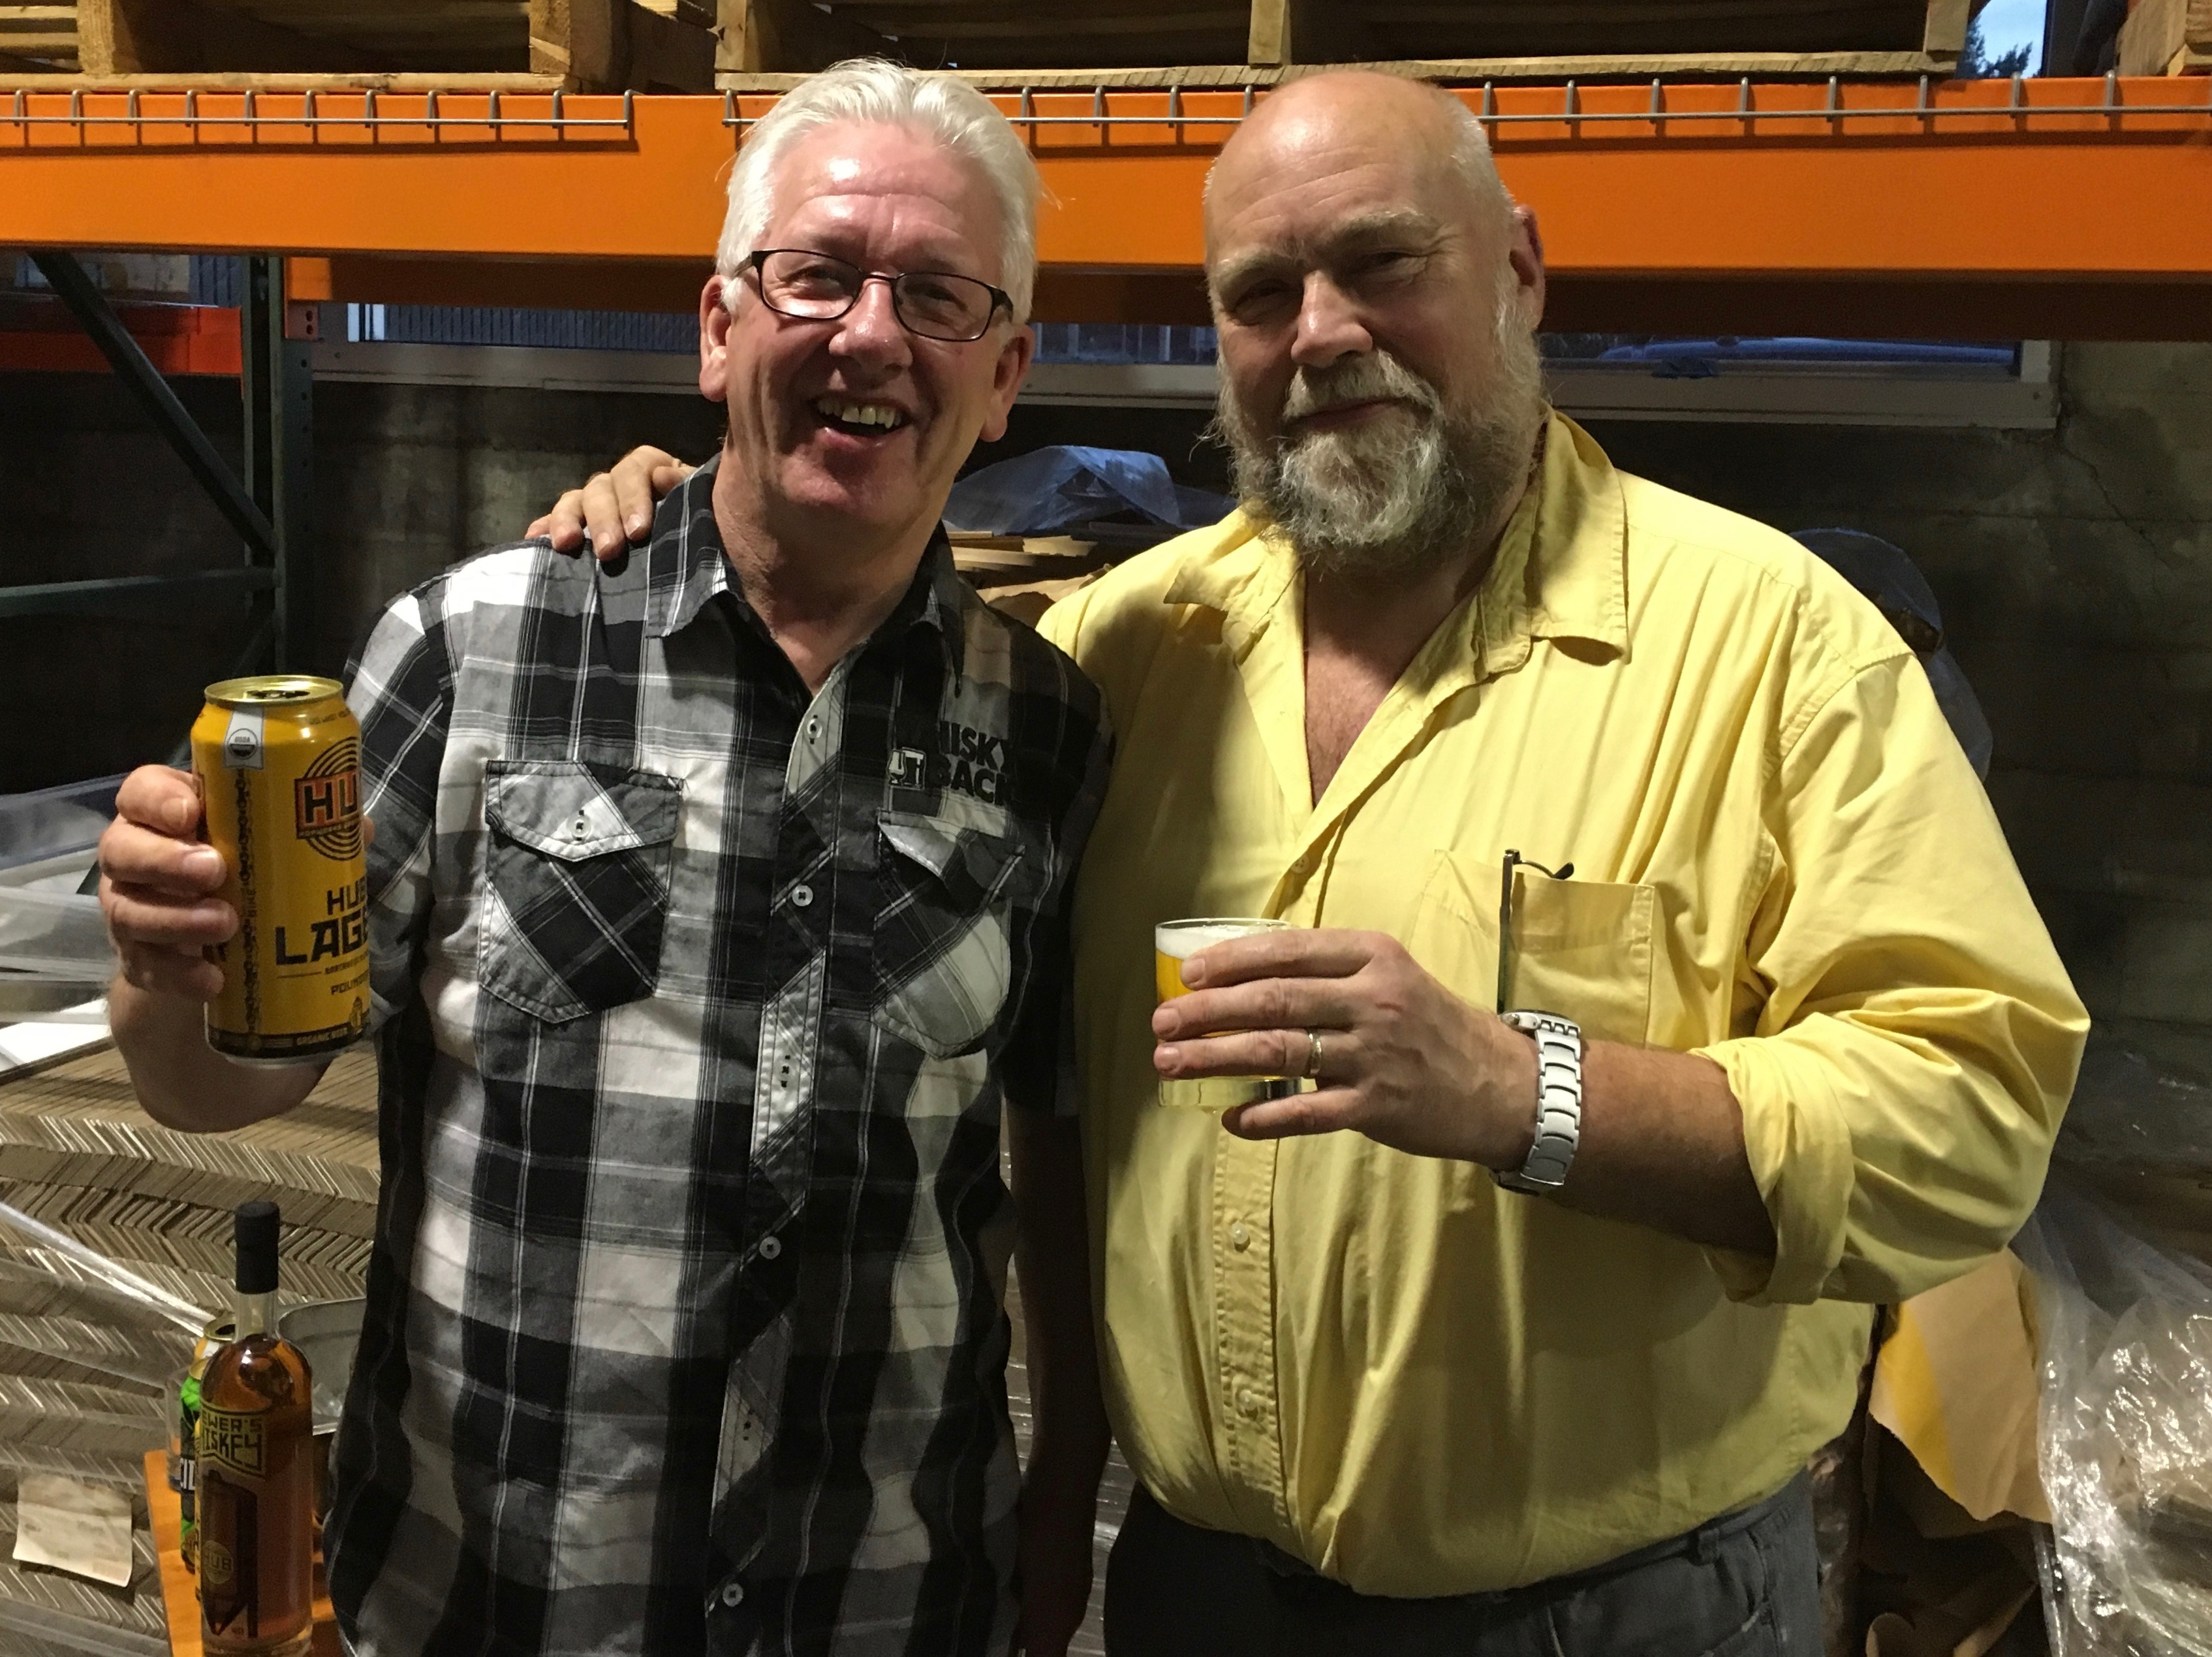 Local whiskey expert Stuart MacLean Ramsay and John Foyston at the media preview for HUB Brewer's Whiskey at Hopworks Urban Brewery.